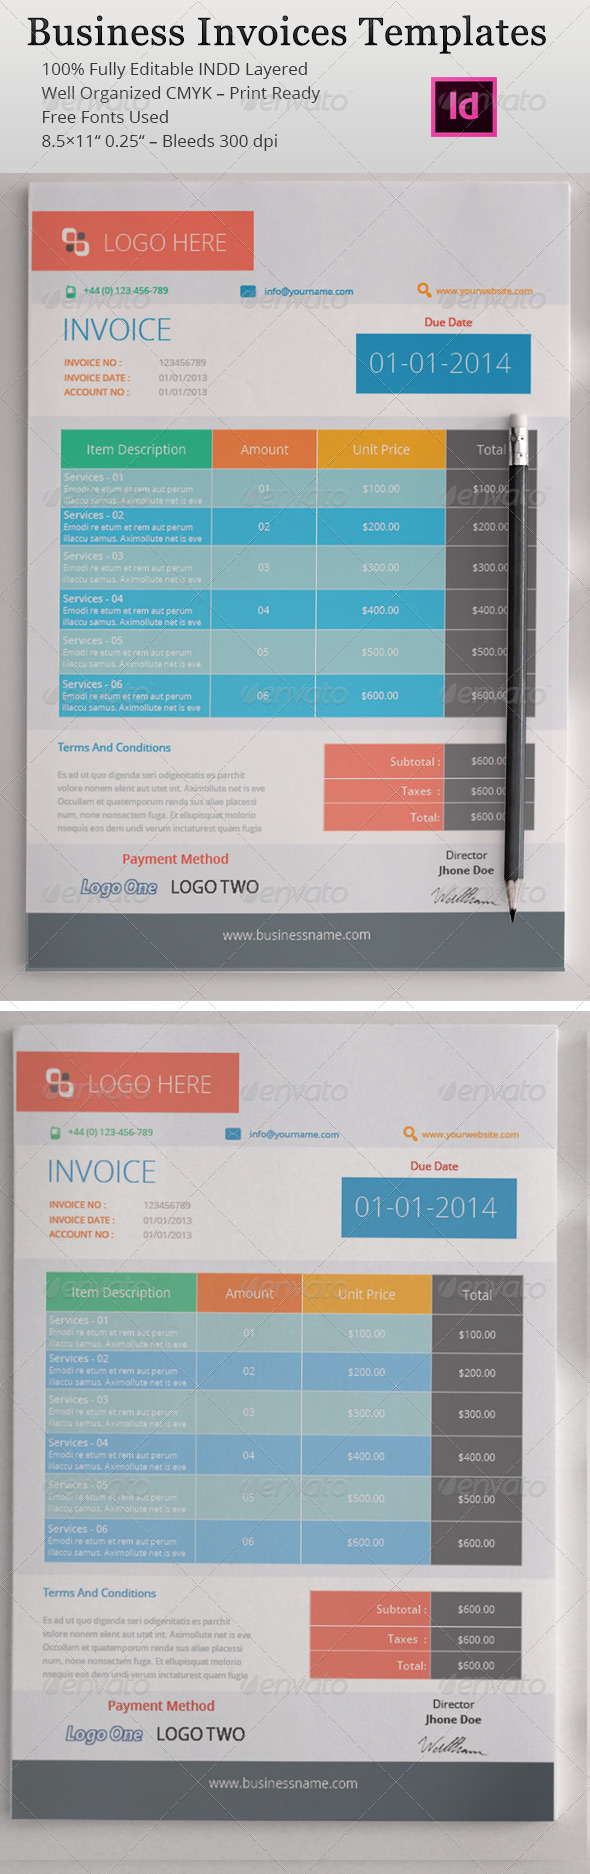 GraphicRiver Business Invoices Templates 4907688